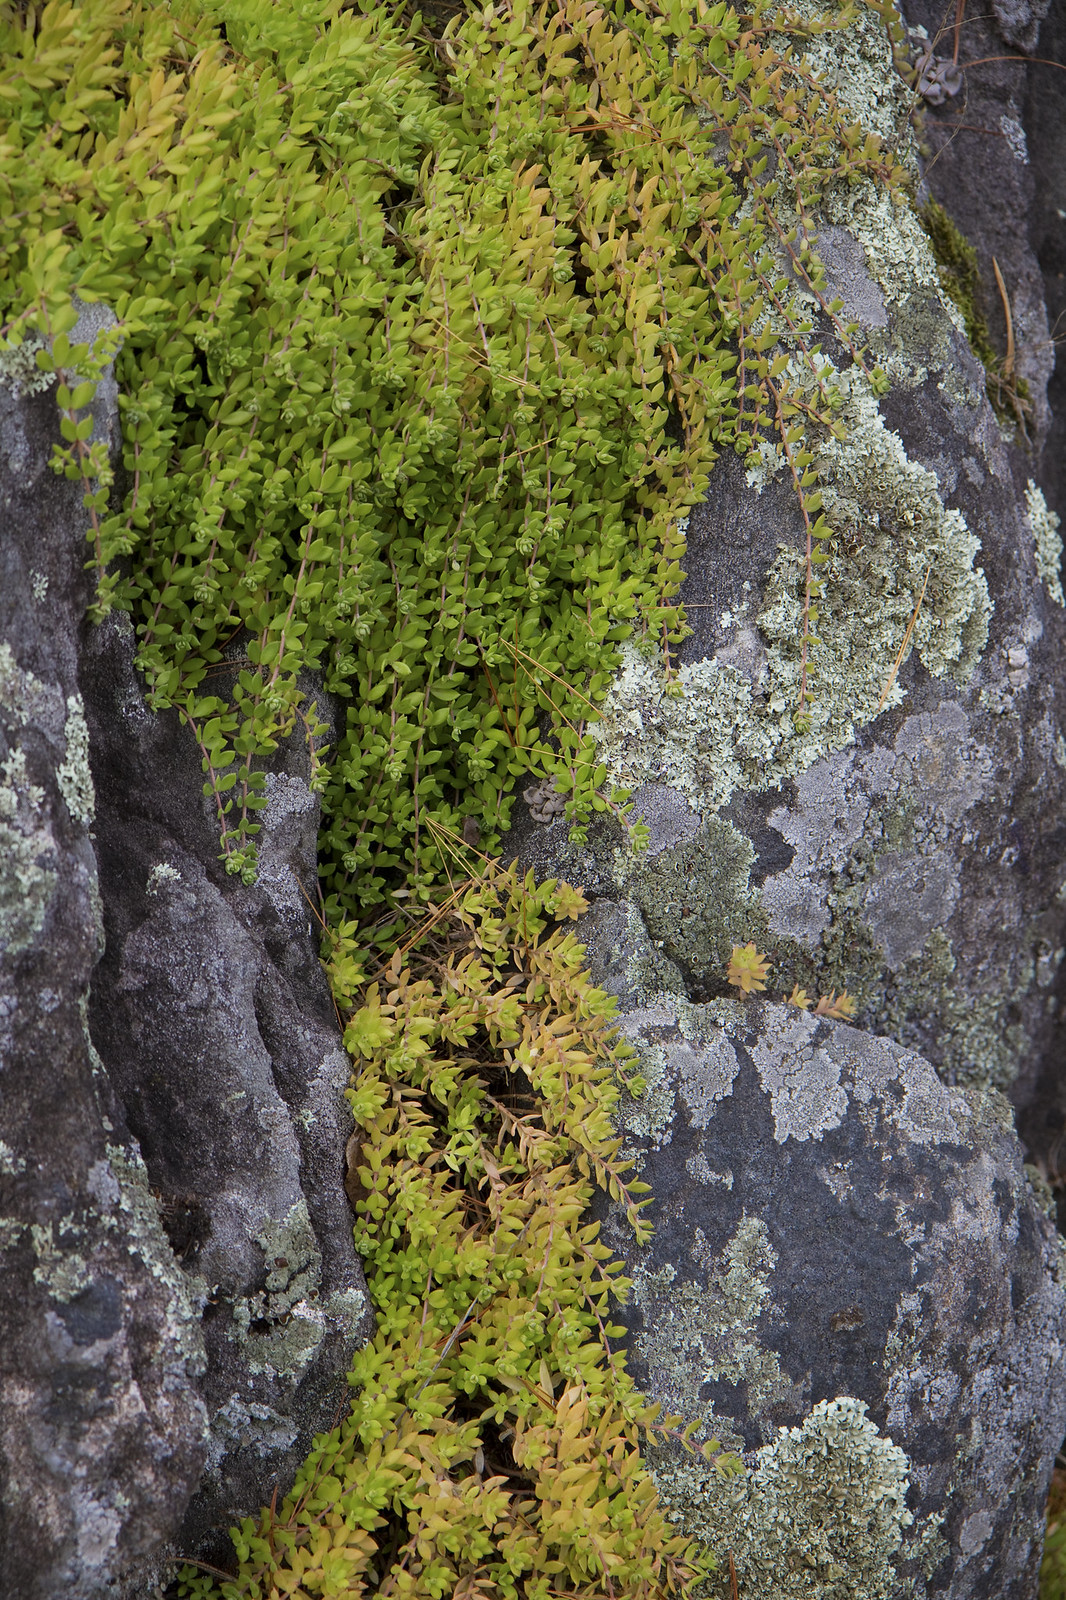 likin' the lichen